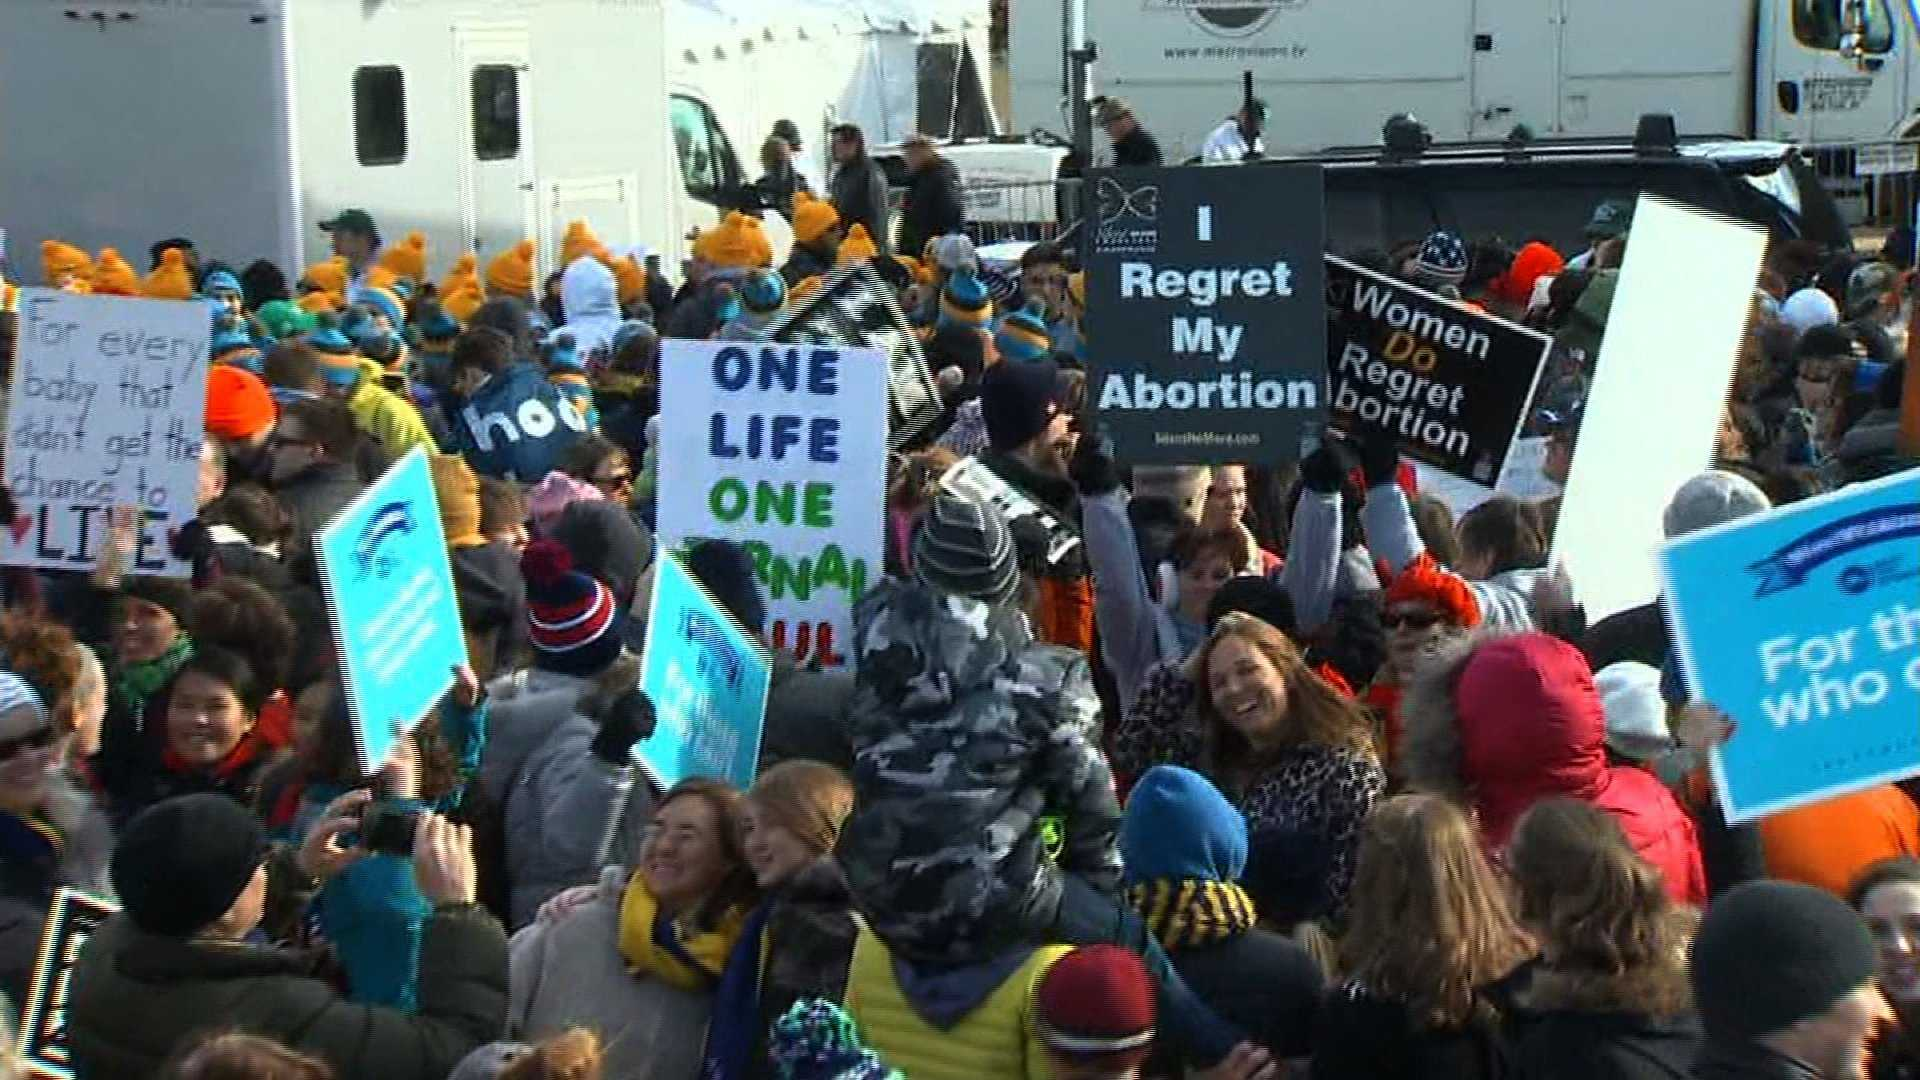 """The March for Life began in Washington, DC, as a small demonstration and rapidly grew to be the largest pro-life event in the world,"" according to the march's website."